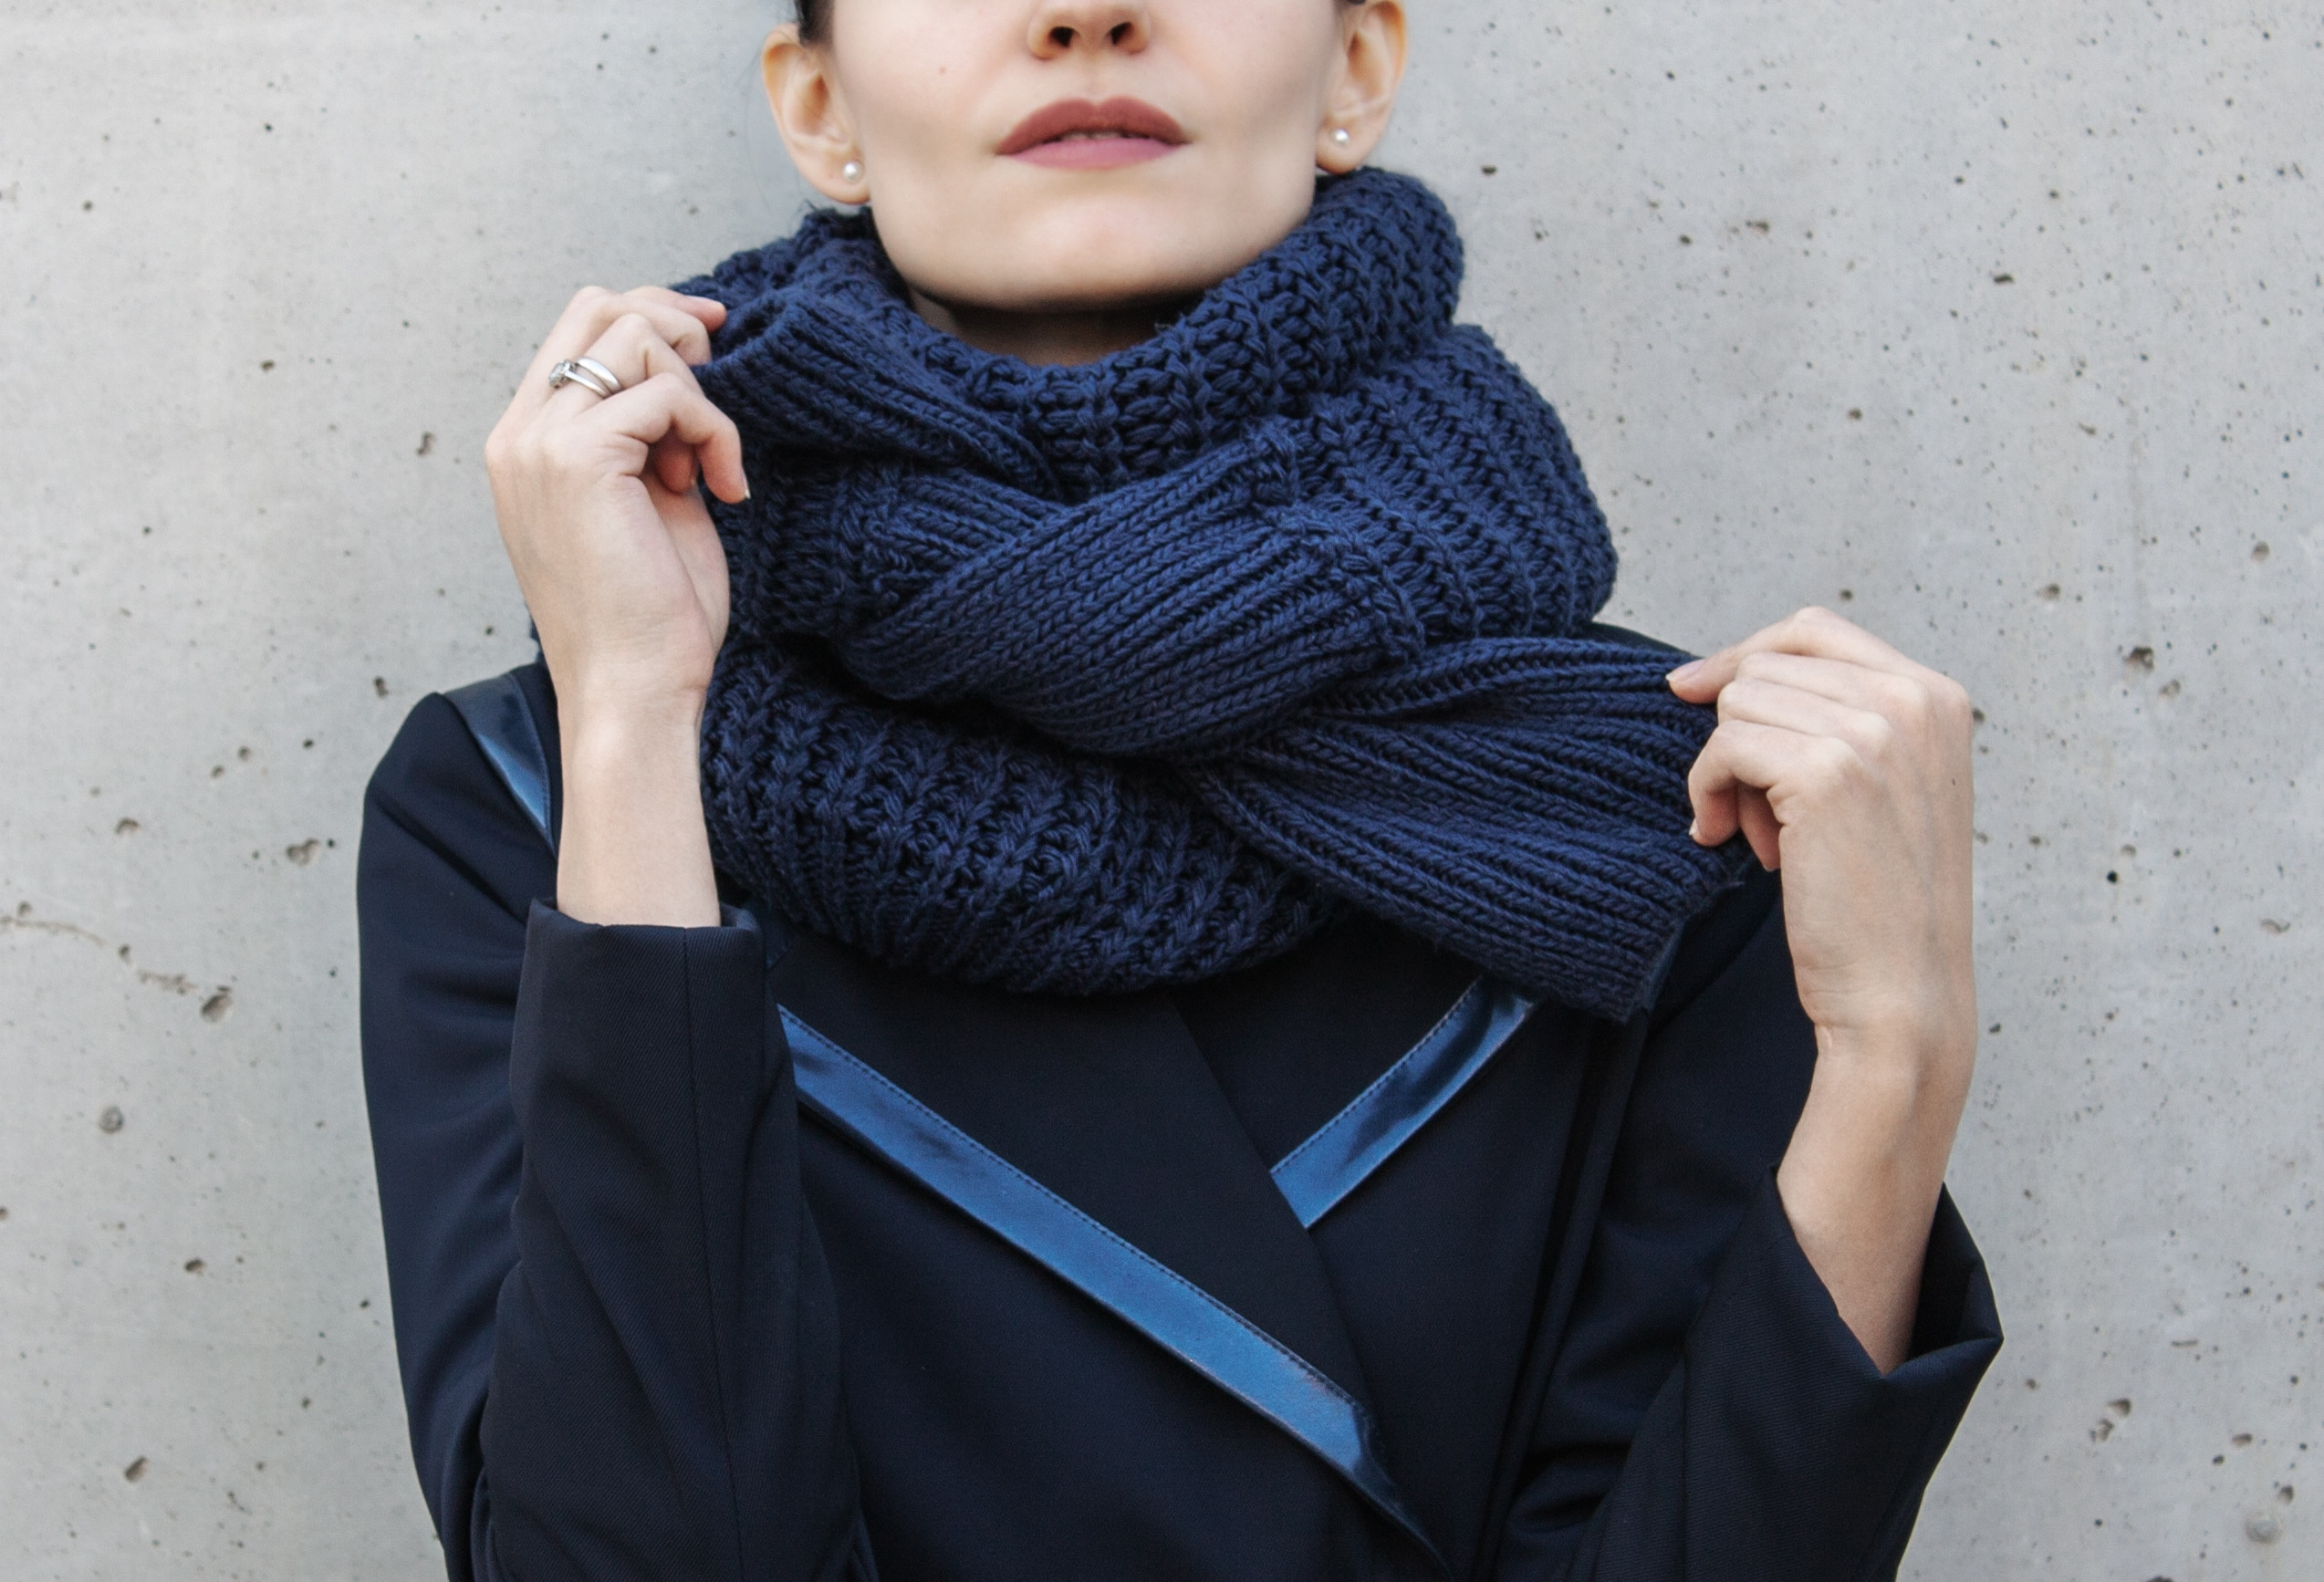 Elena Hilman showing how to tie s scarf out sweater